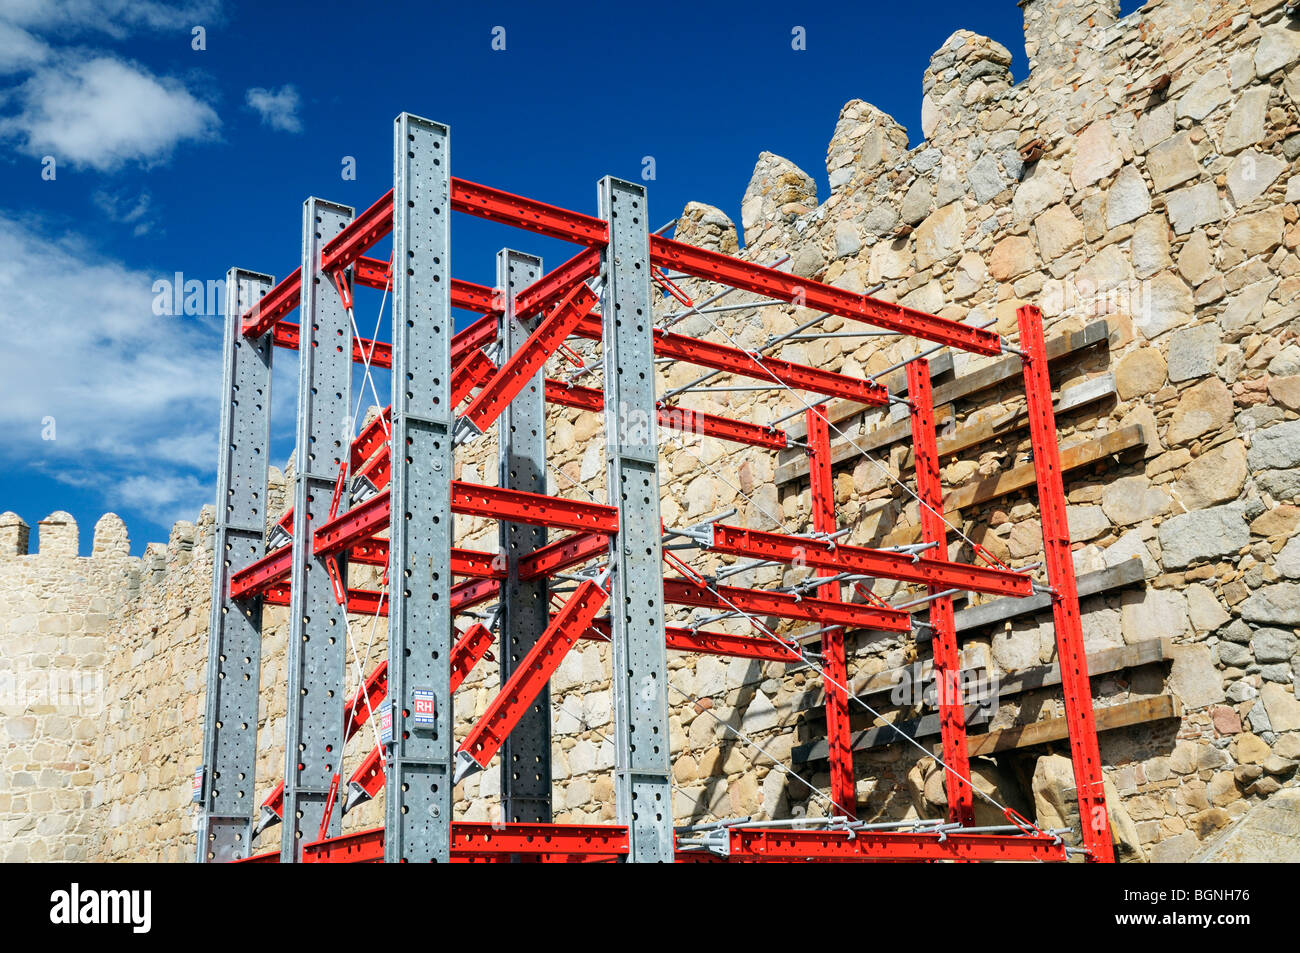 Specialized scaffolding for structural reinforcement, City walls of Avila, Spain Stock Photo